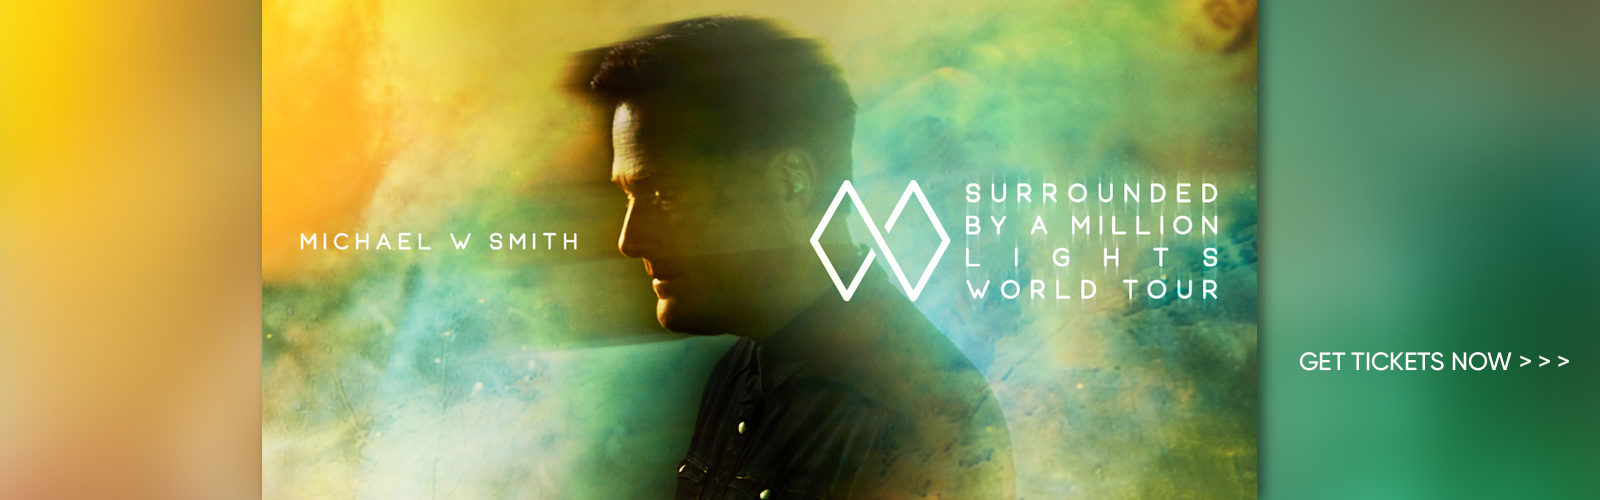 Michael W. Smith: Surrounded By A Million Lights World Tour